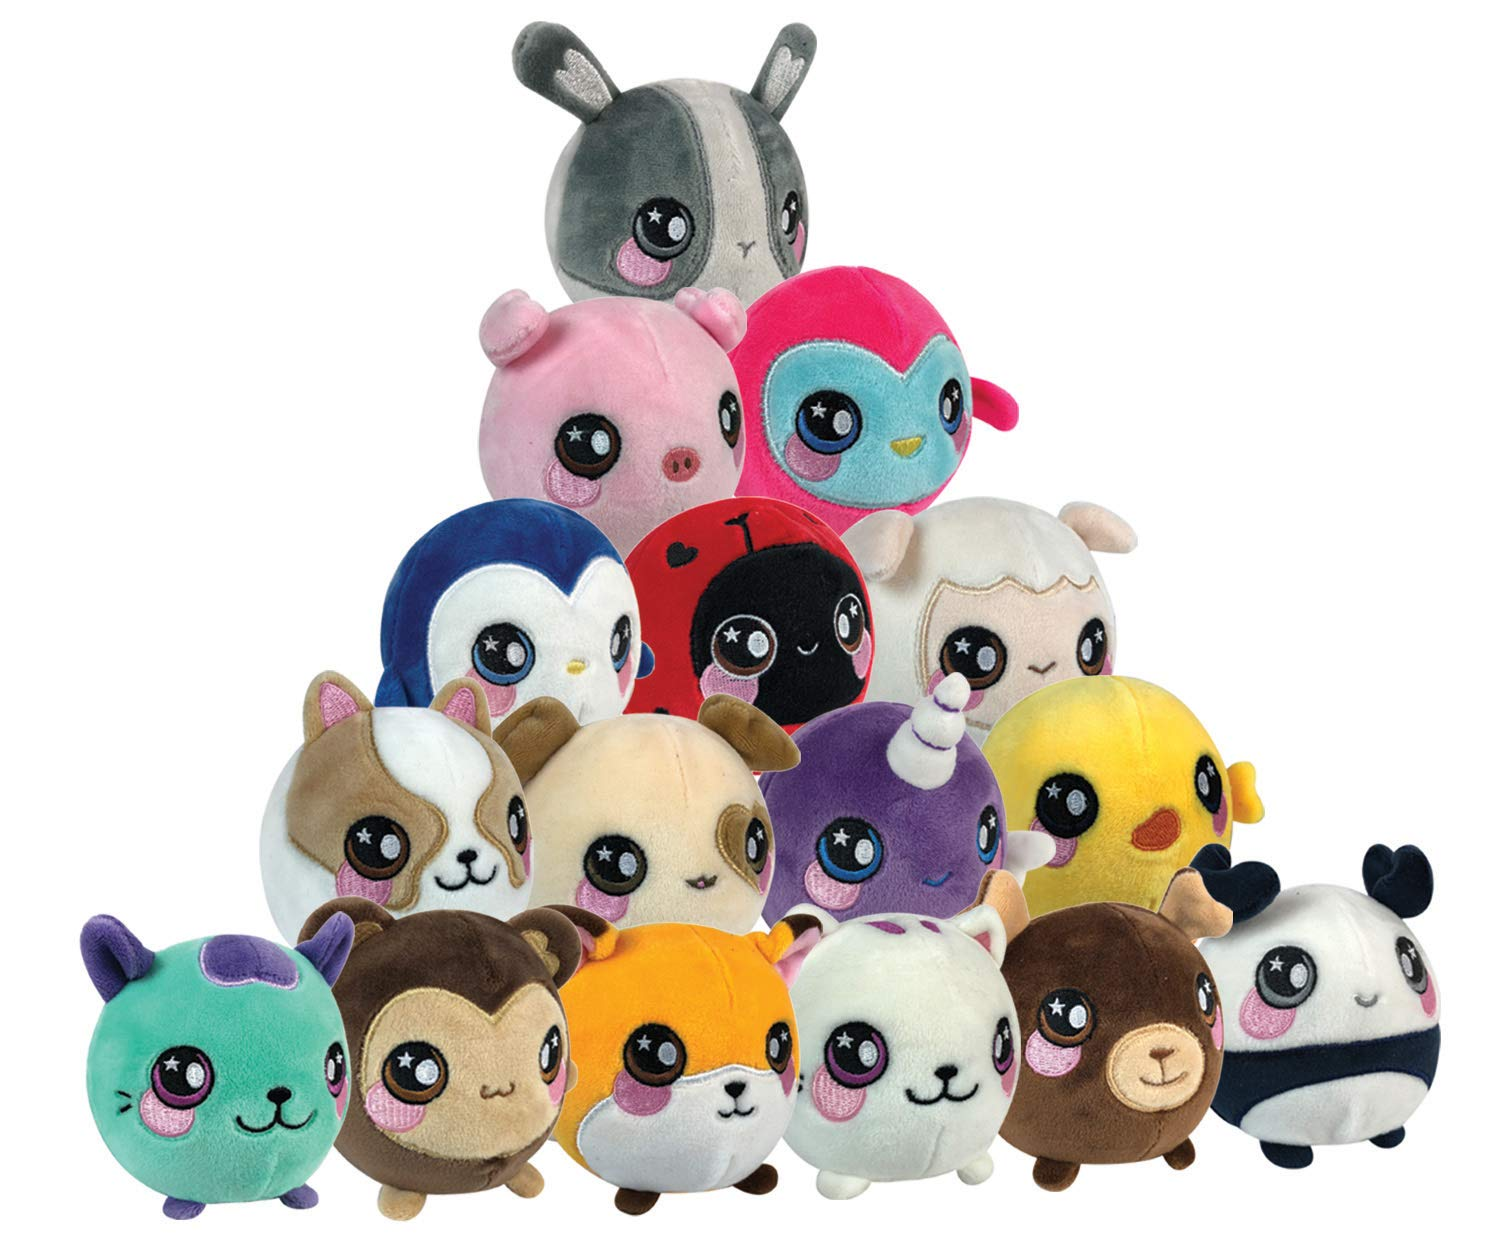 Squeezamals Slow Rising Soft Toy, Squishie, Squeezy and Scented Plush Animals (Variety of Styles - Styles Picked at Random)